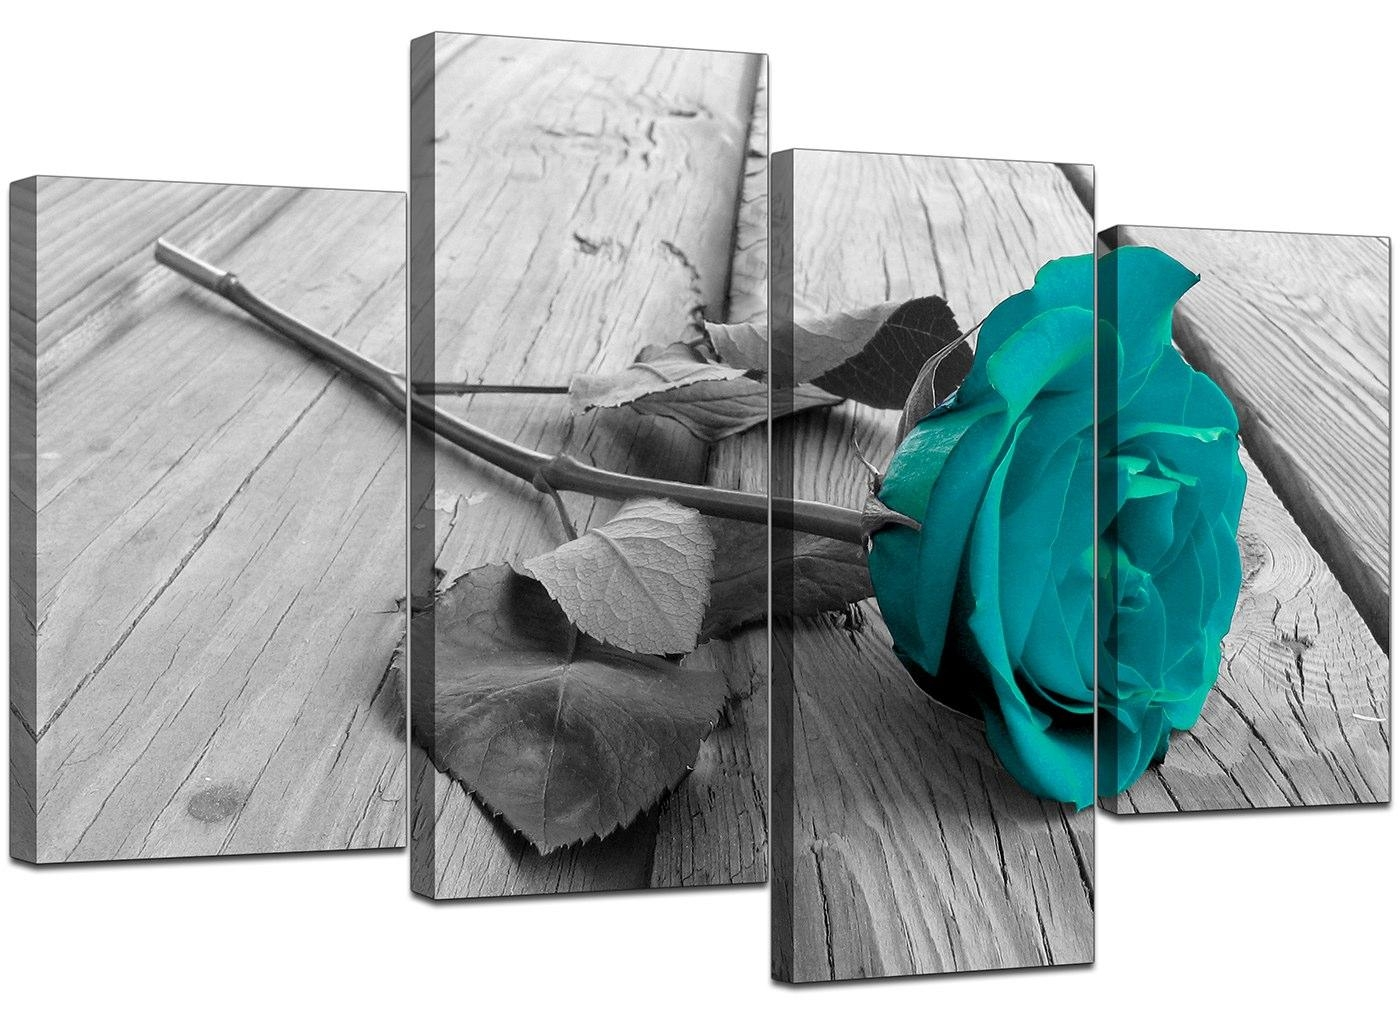 Canvas Prints Uk Of Teal Rose In Black & White For Your Bathroom For Teal Flower Canvas Wall Art (Image 5 of 20)